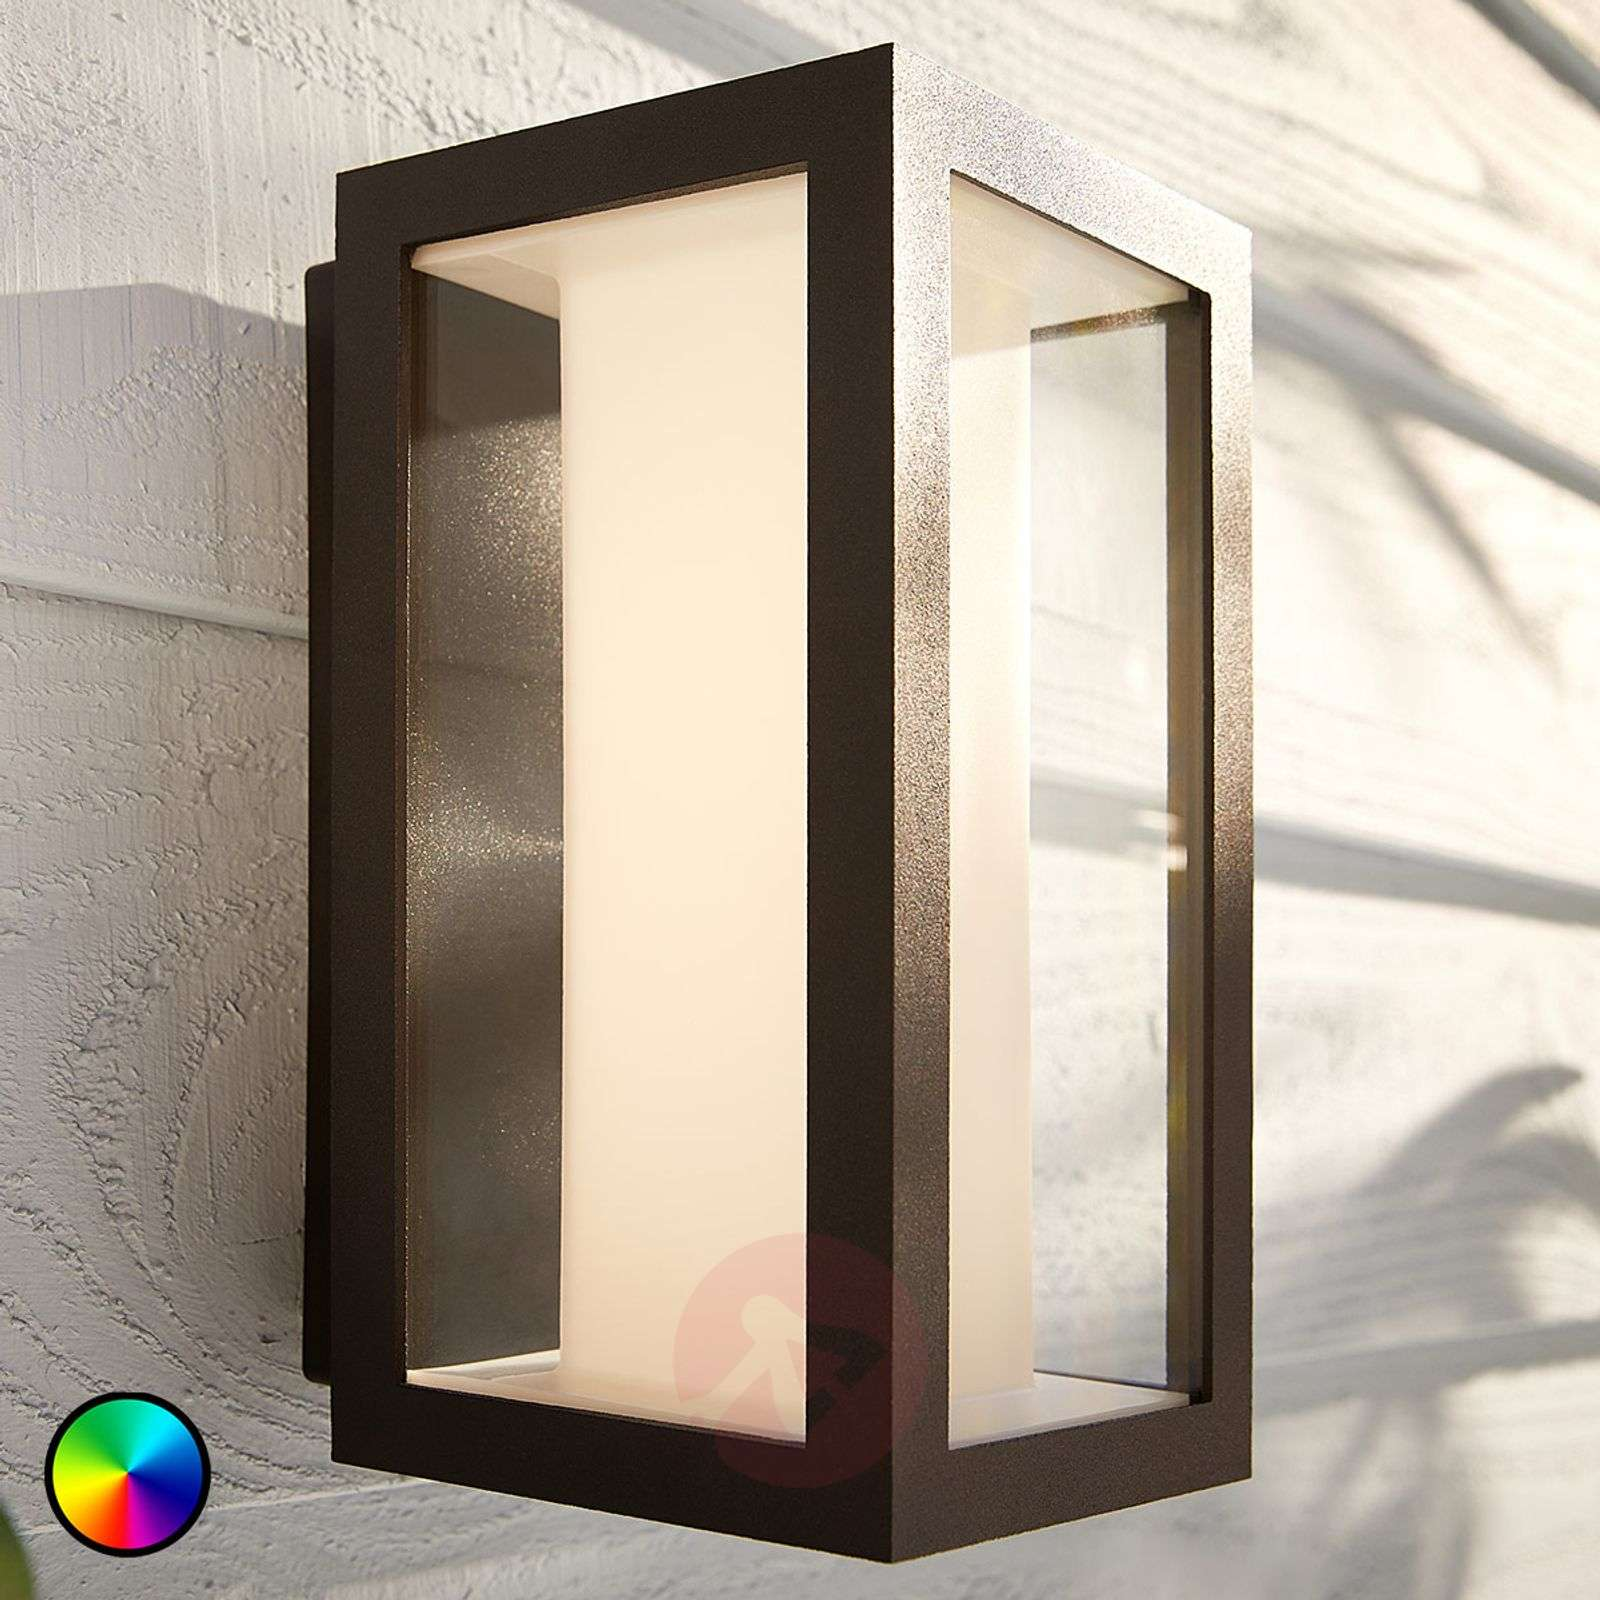 Philips Hue White+Color Impress wall light narrow-7534108-02